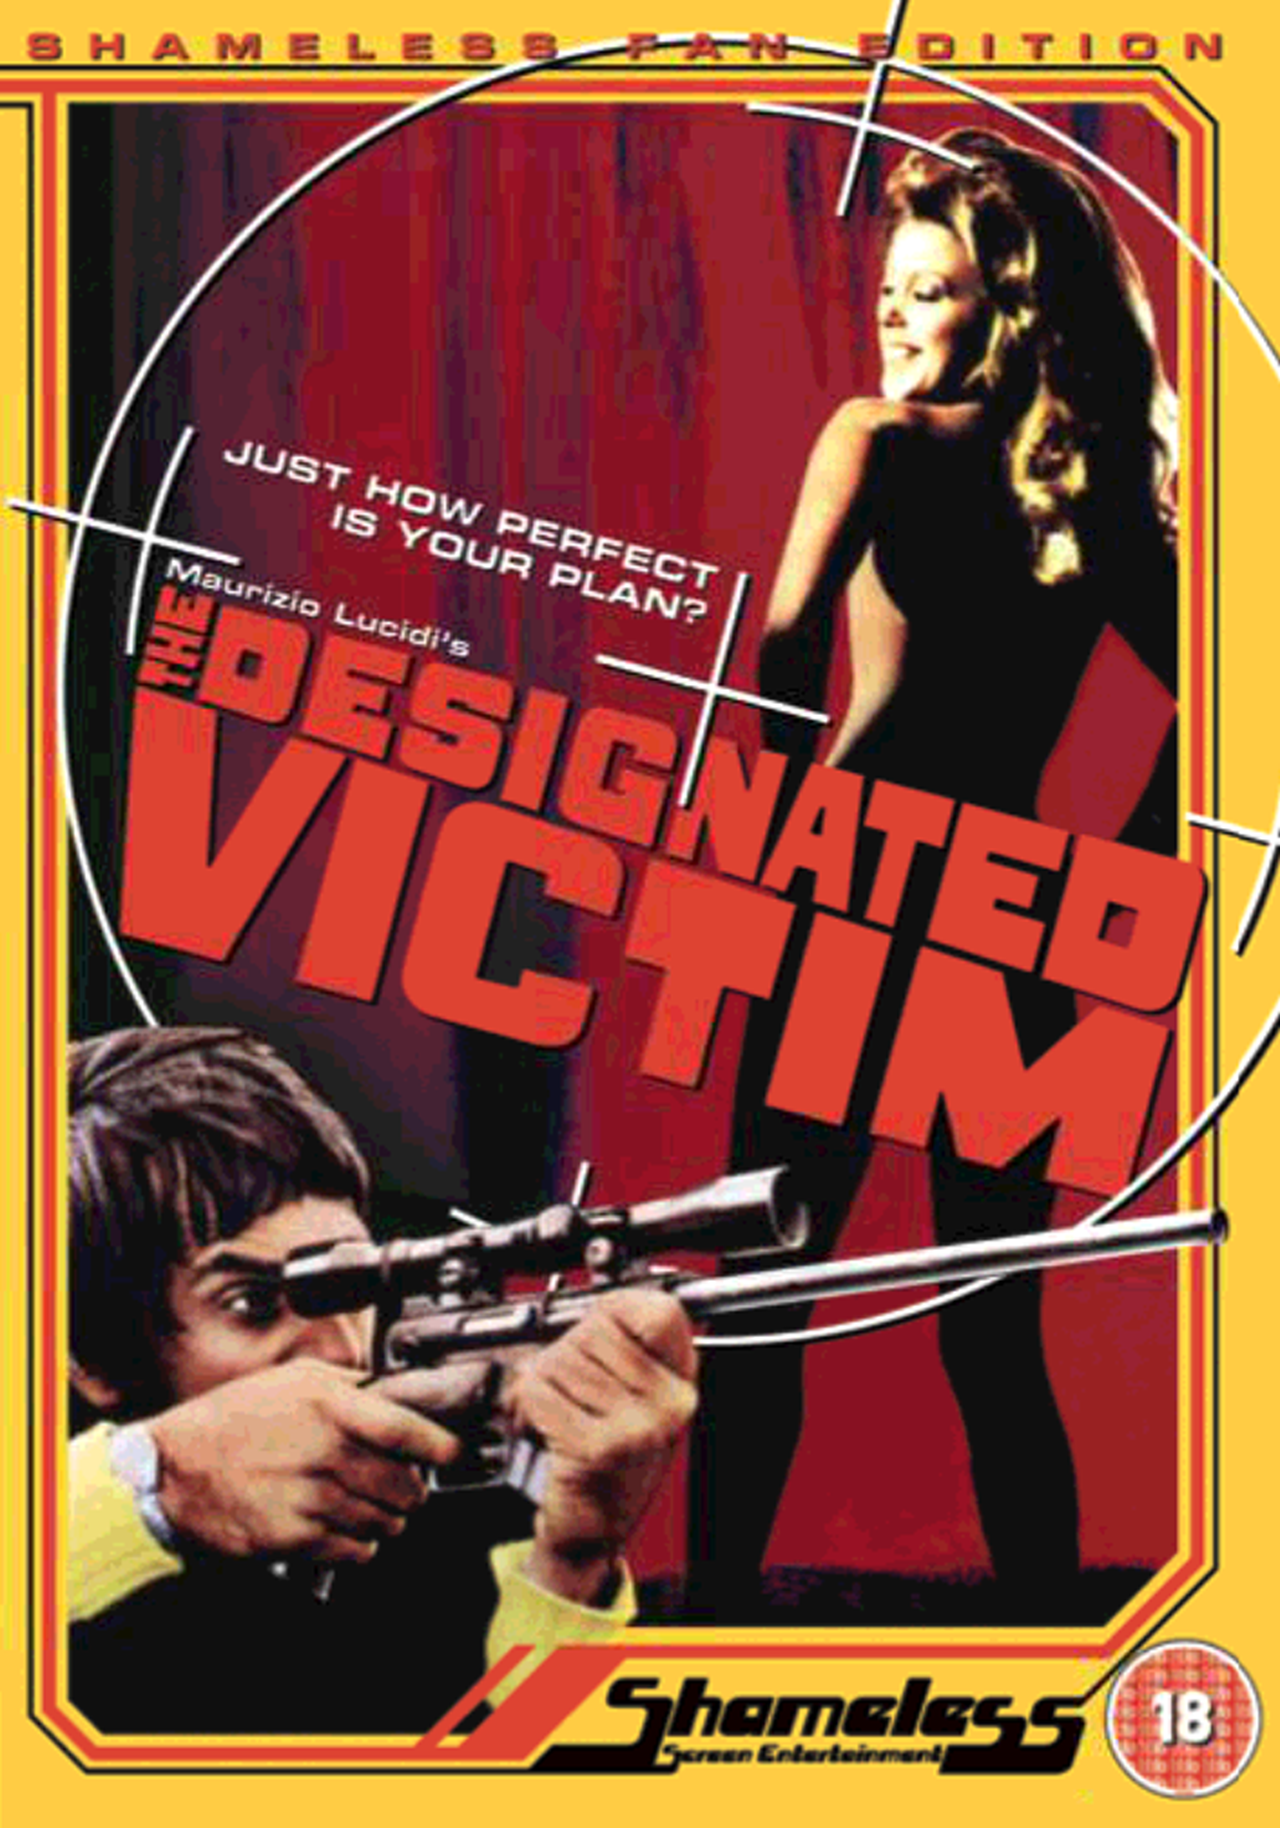 The Designated Victim - 1